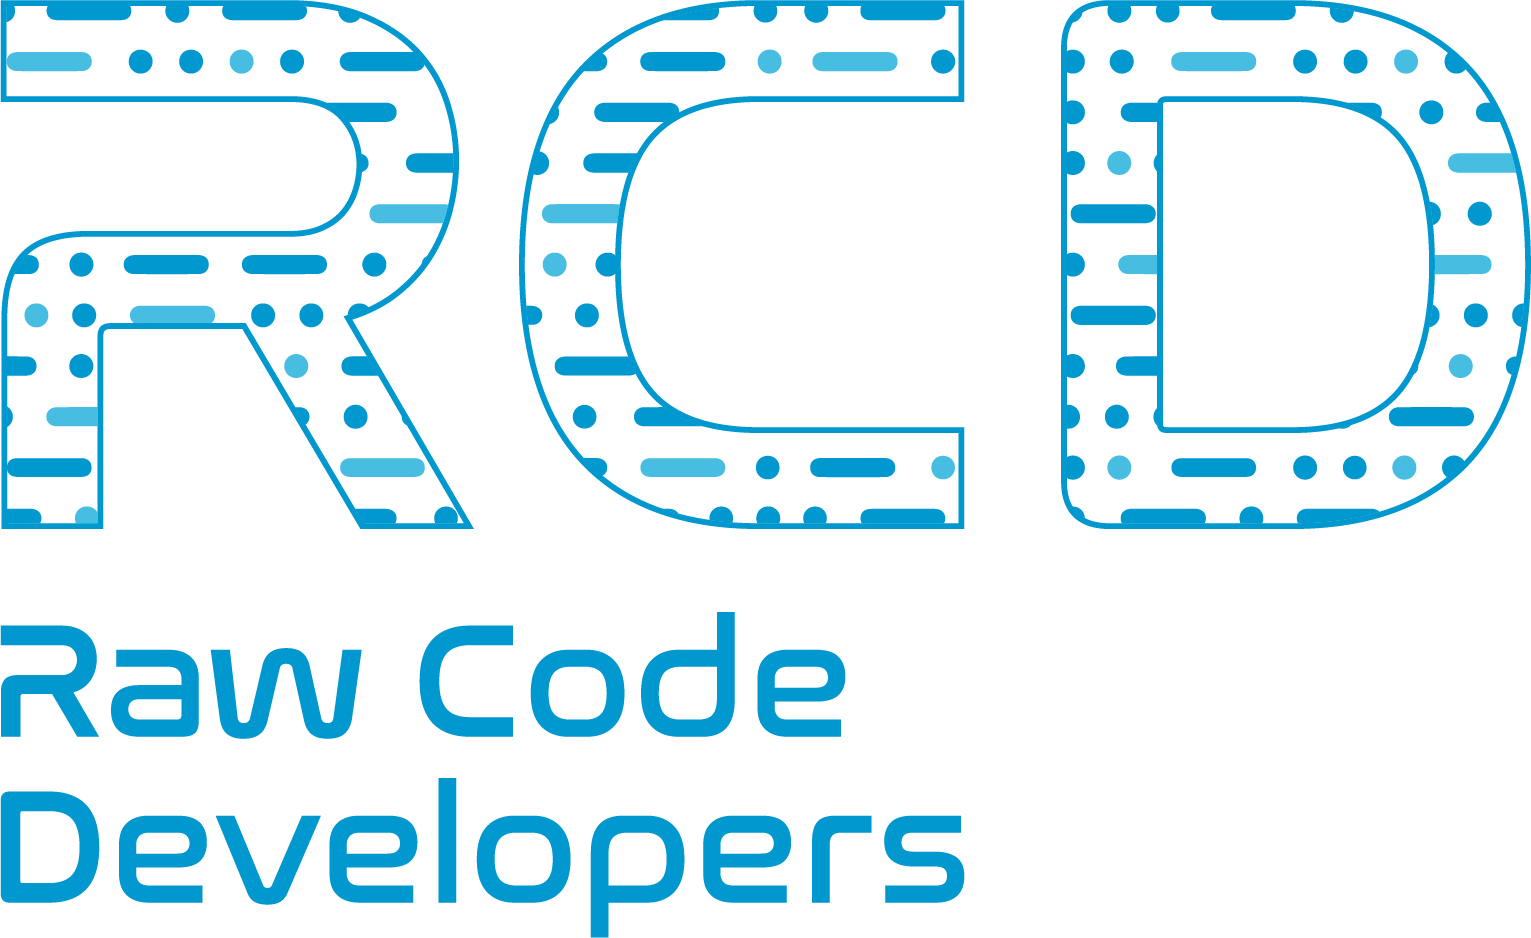 Raw Code Developers